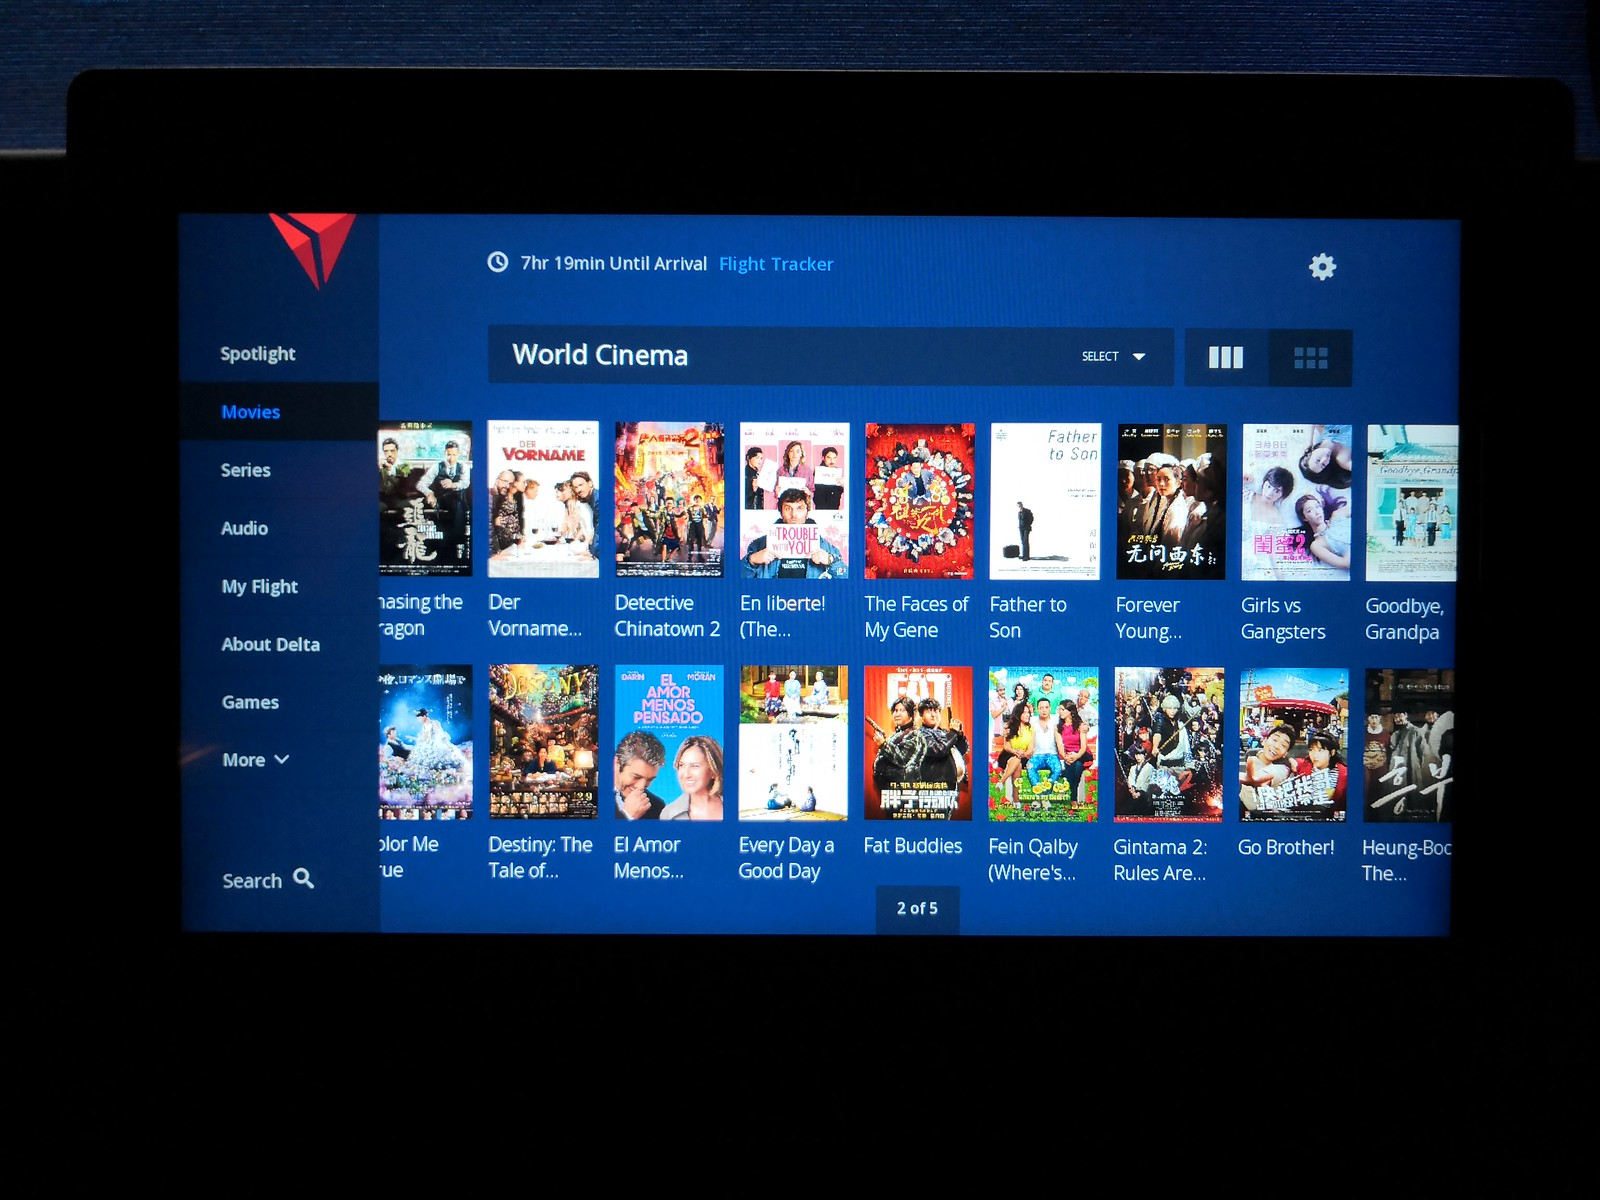 Inflight entertainment choices